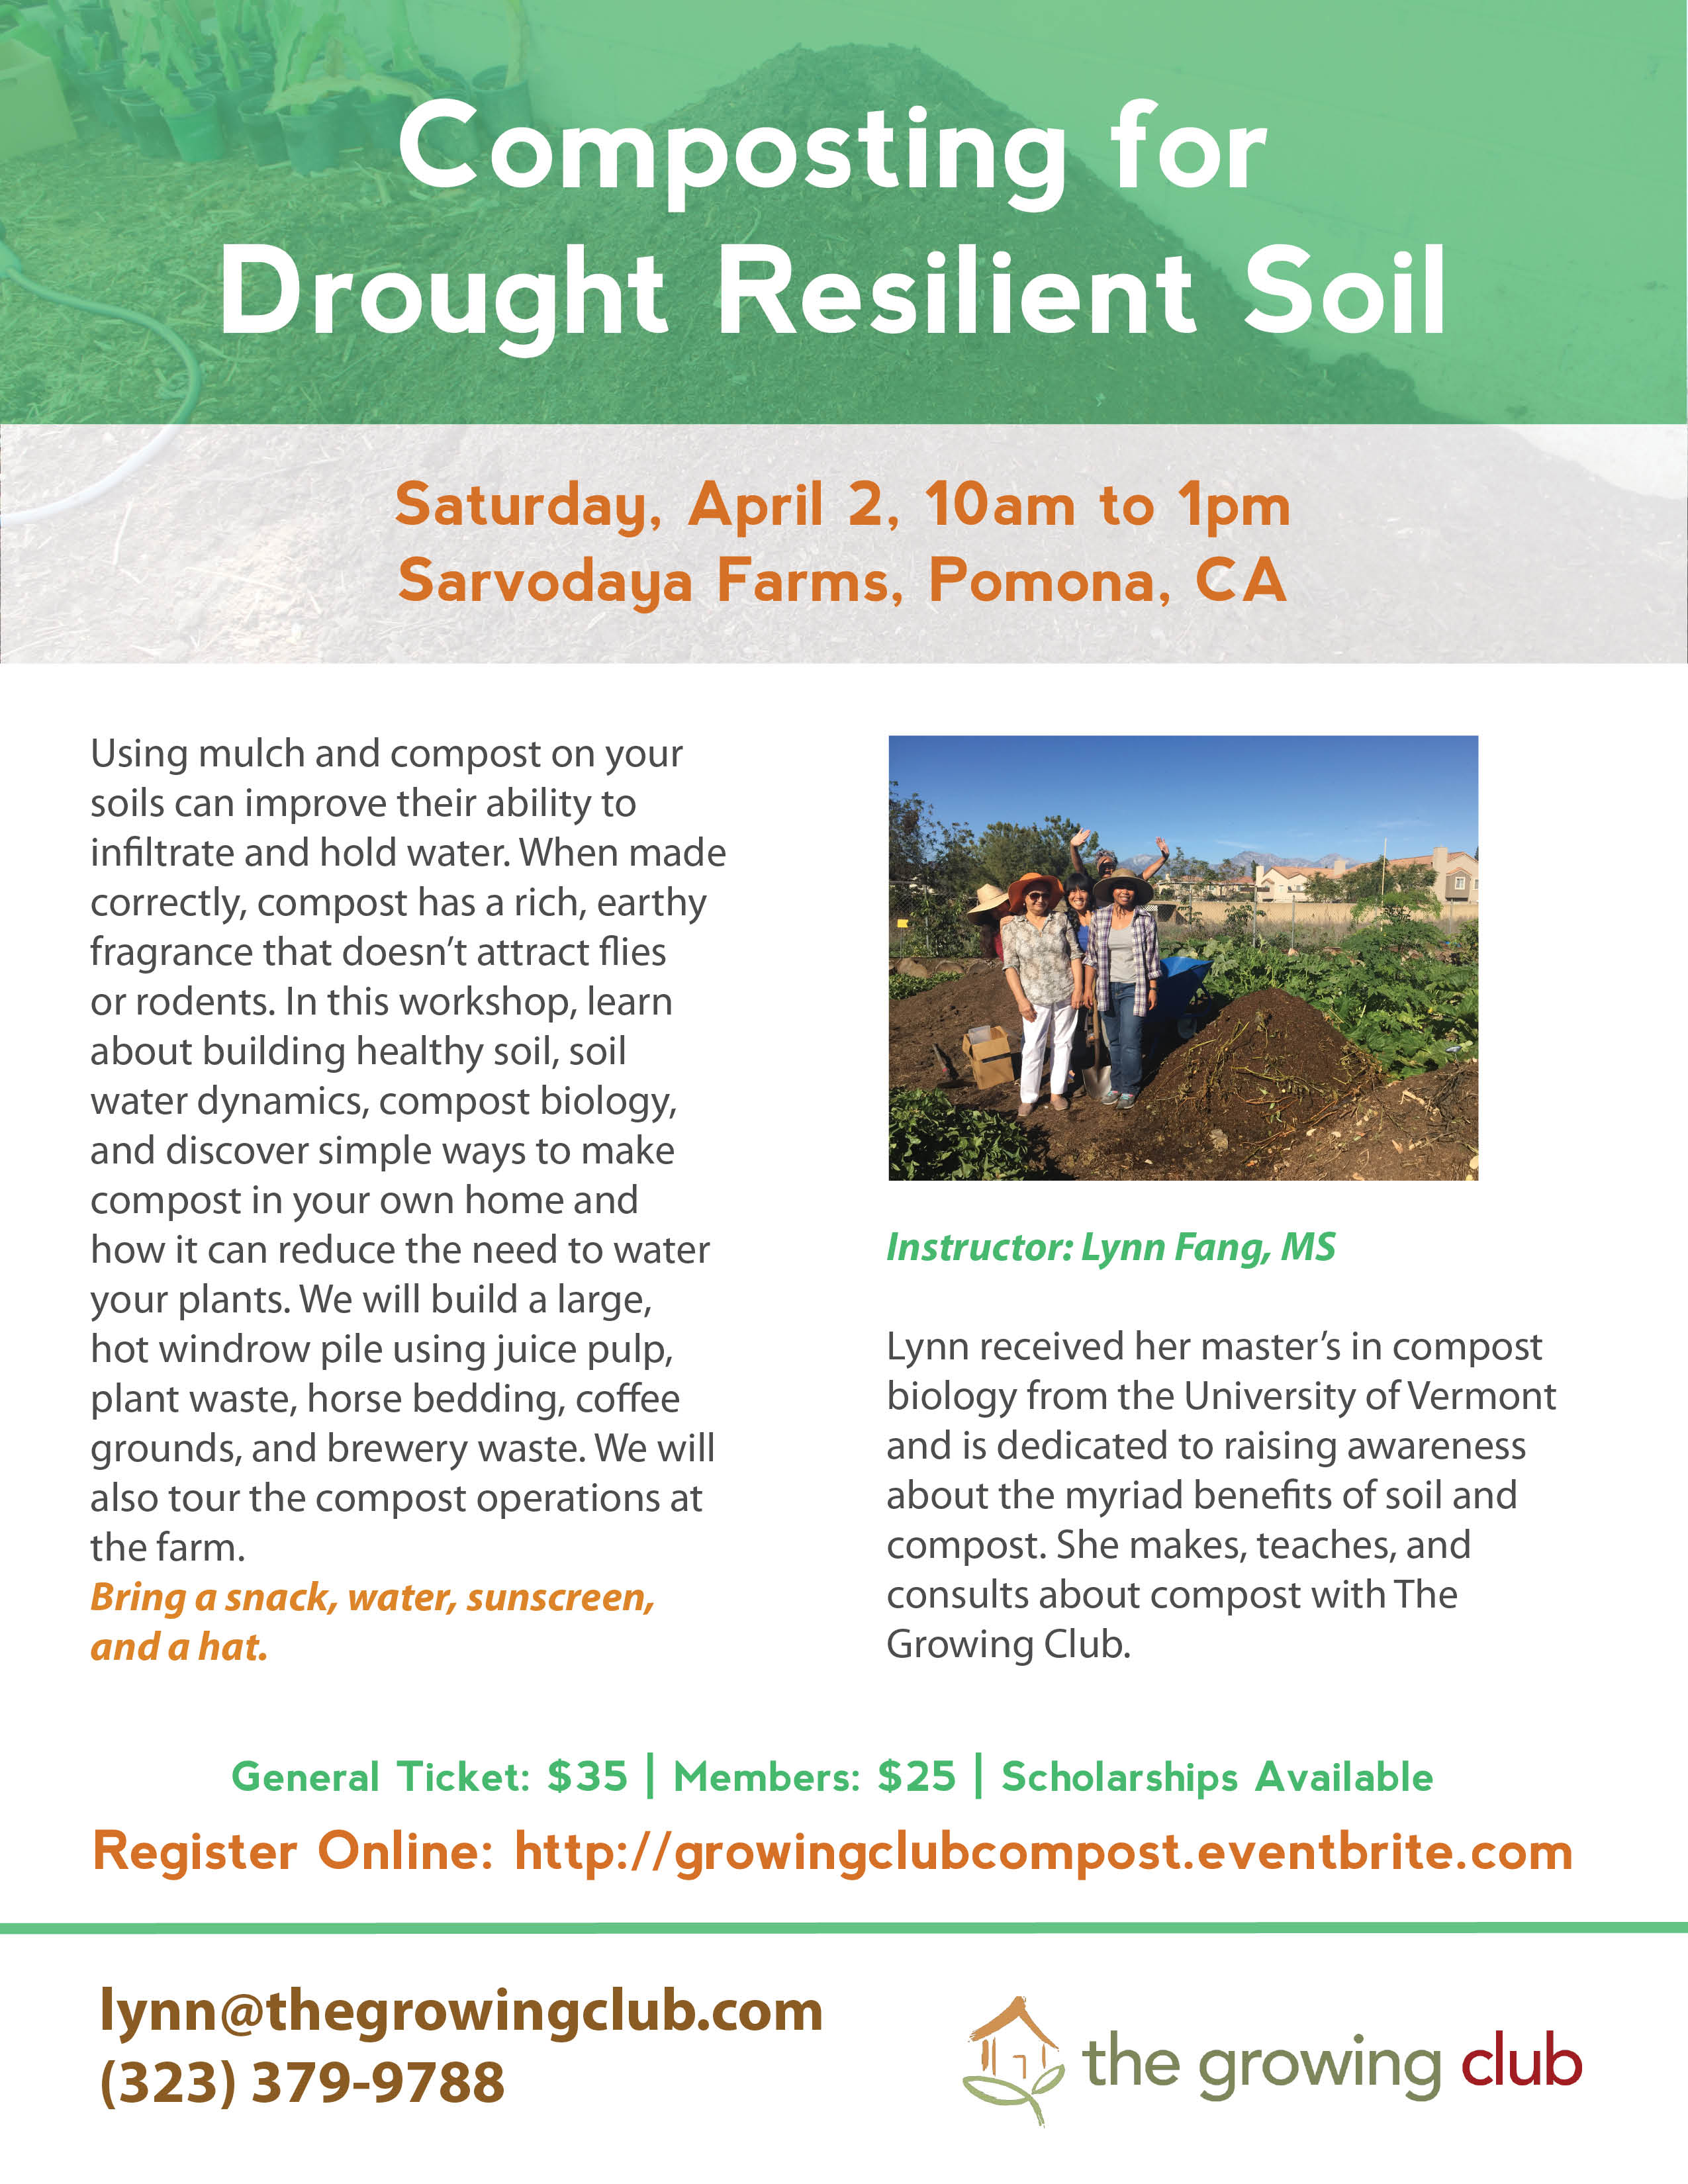 Composting for Drought Resilient Soil